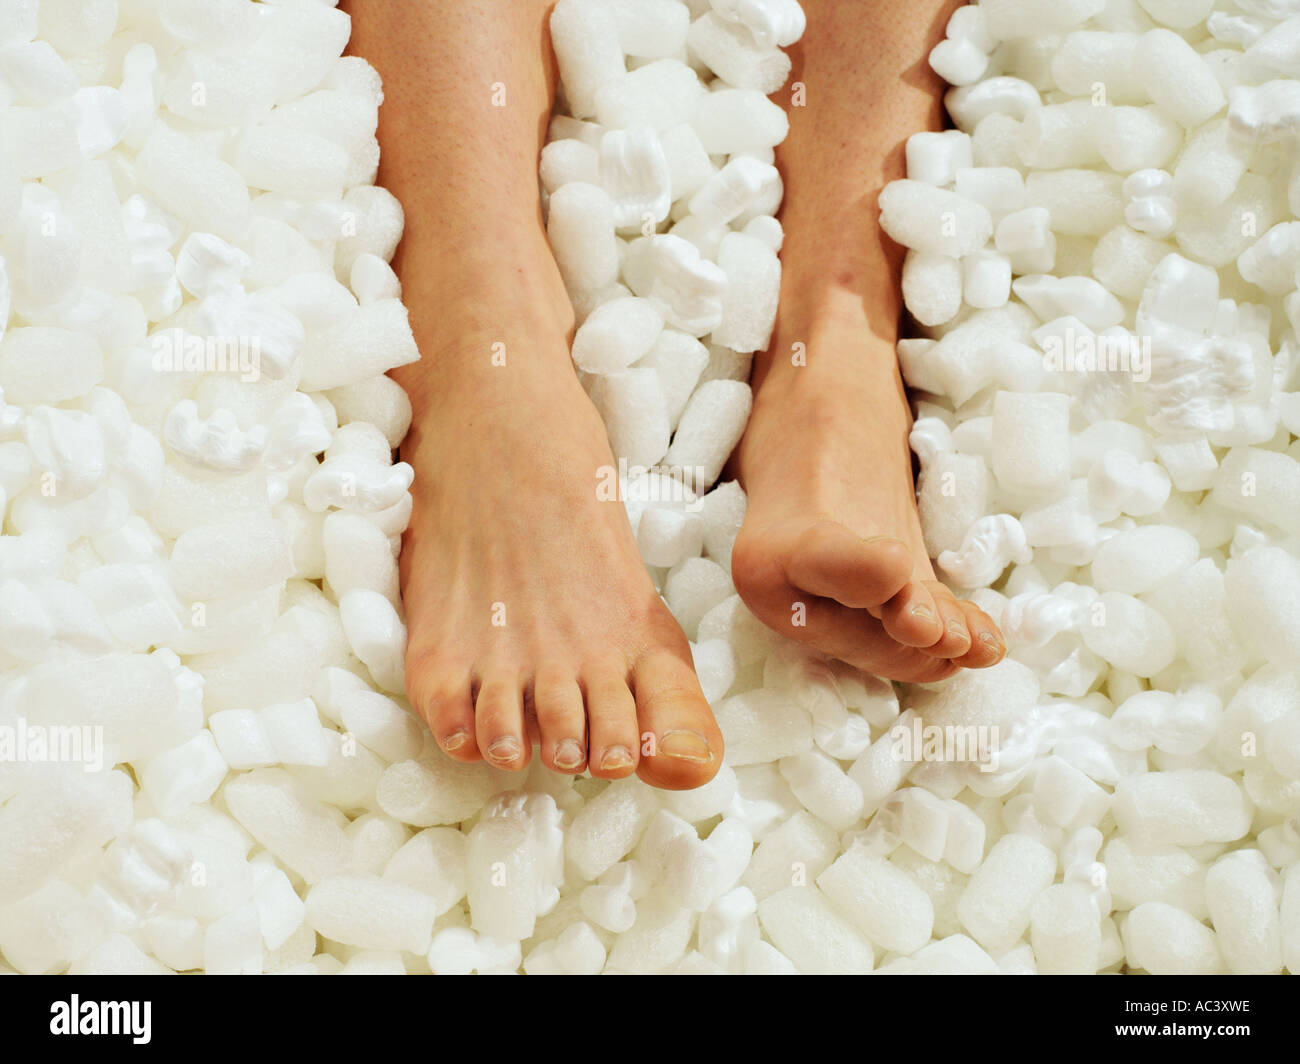 A pair of packaged feet - Stock Image